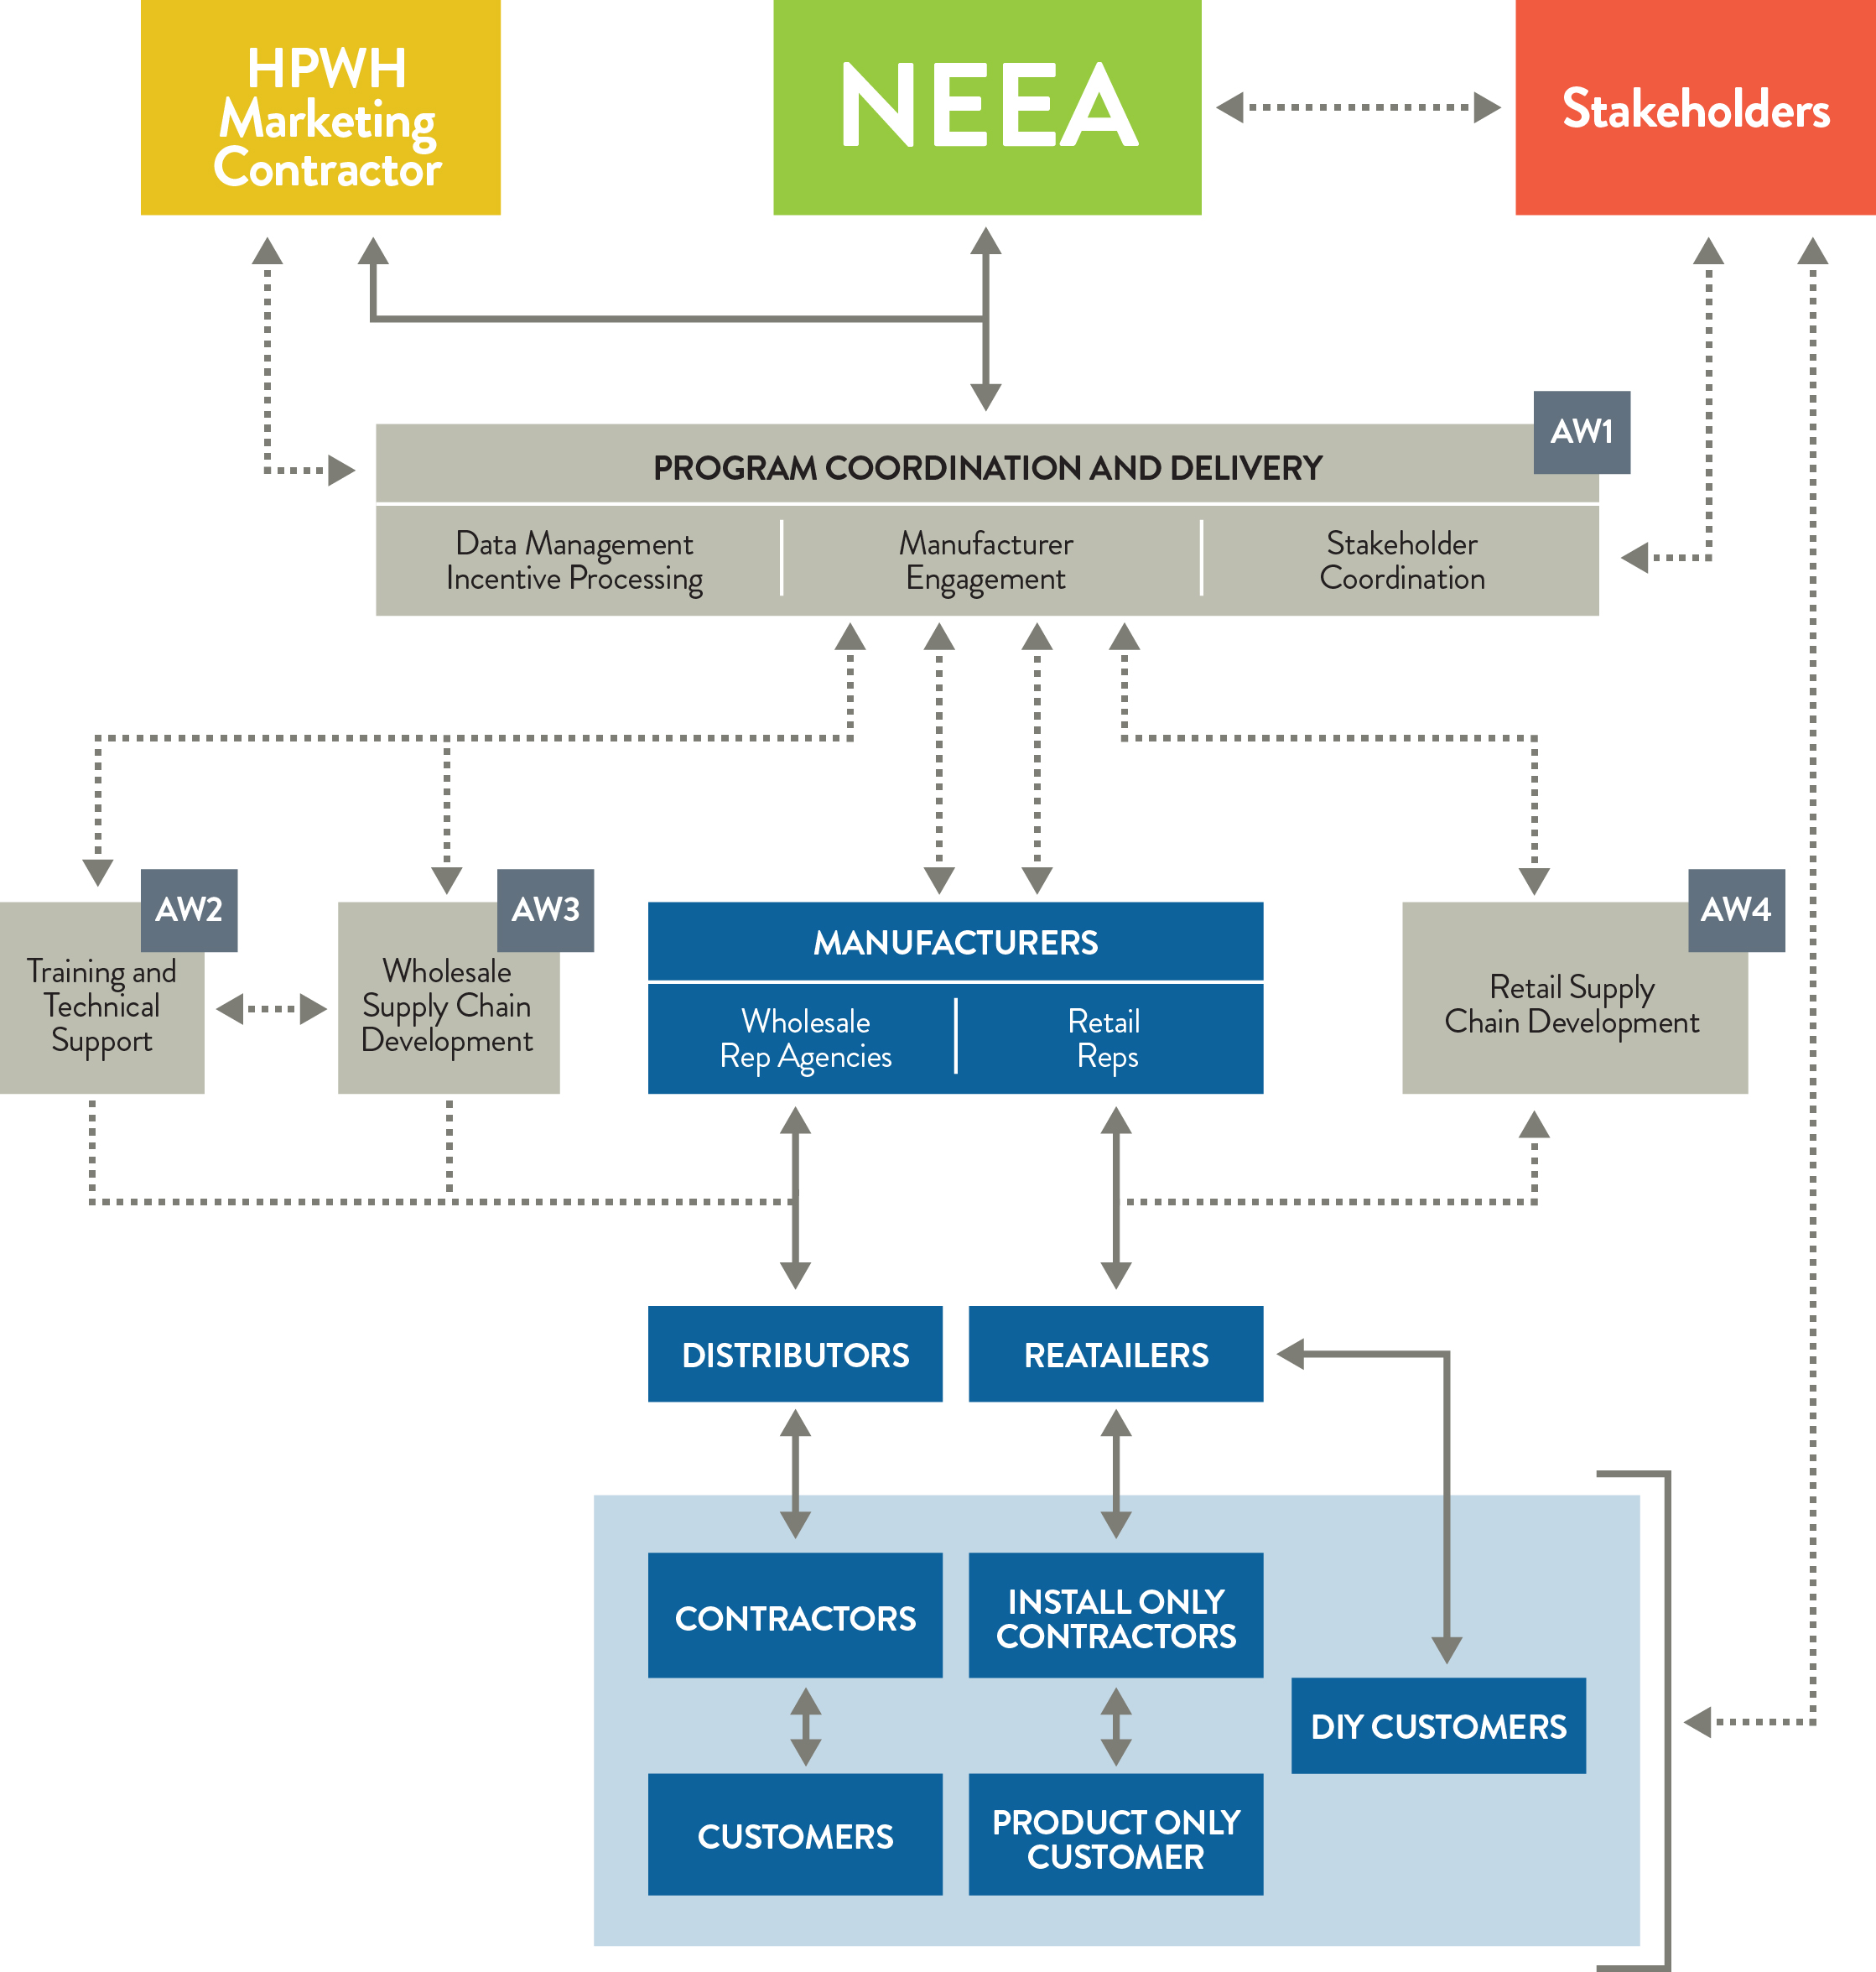 NEEA_Org_Chart_BIG_04NOV16.jpg